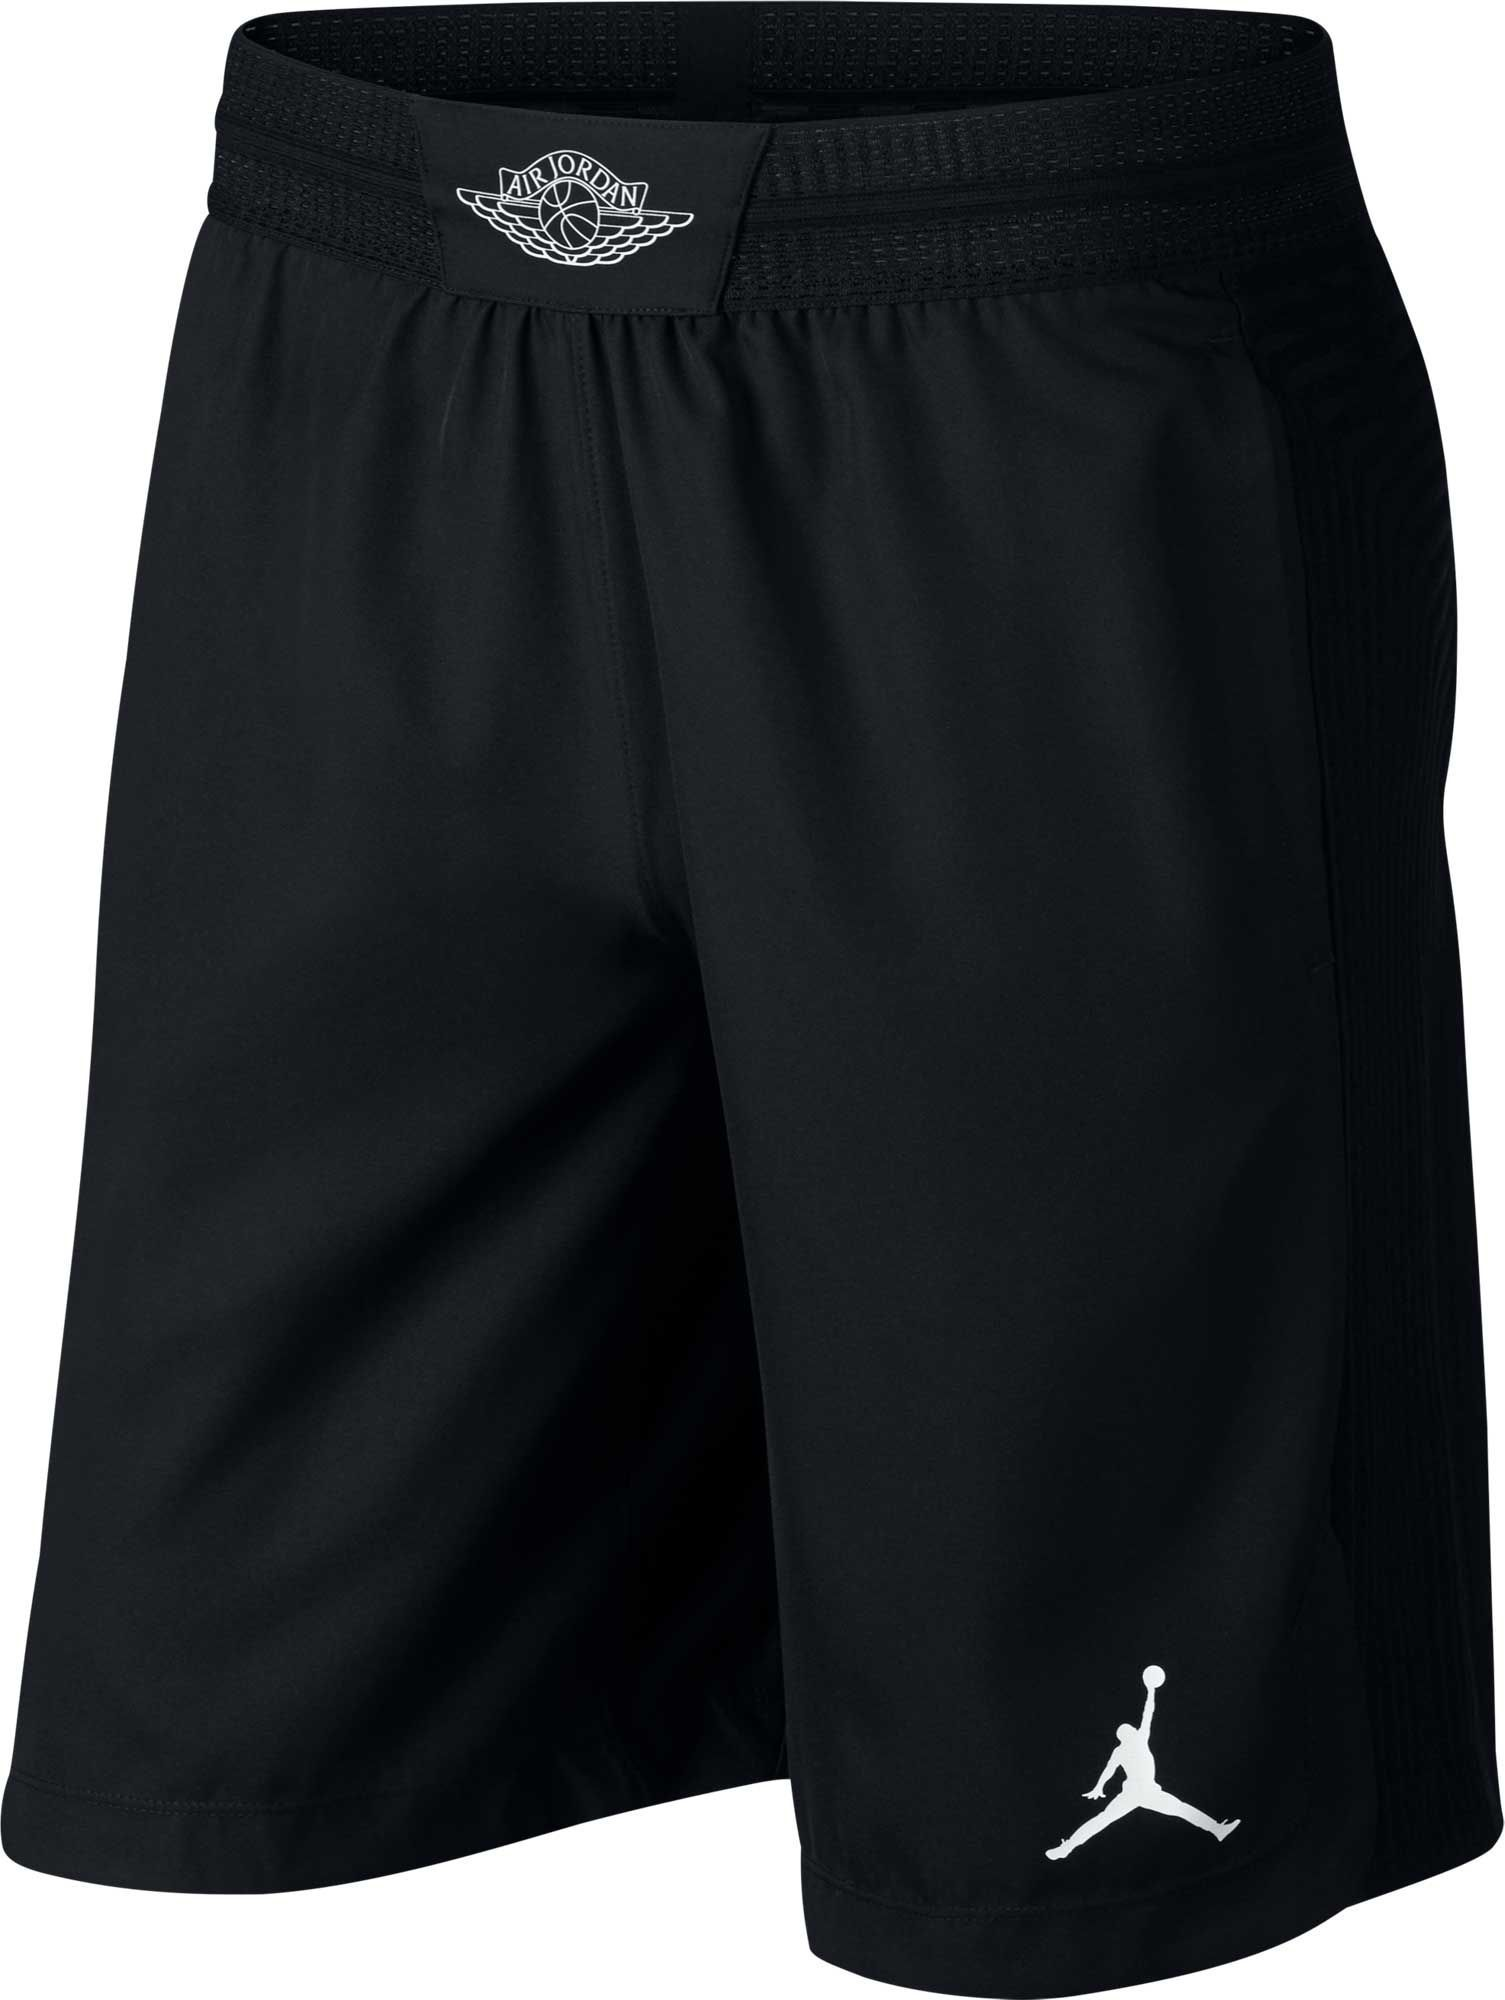 cea82fbcccf1 Jordan Men s Ultimate Flight Basketball Shorts